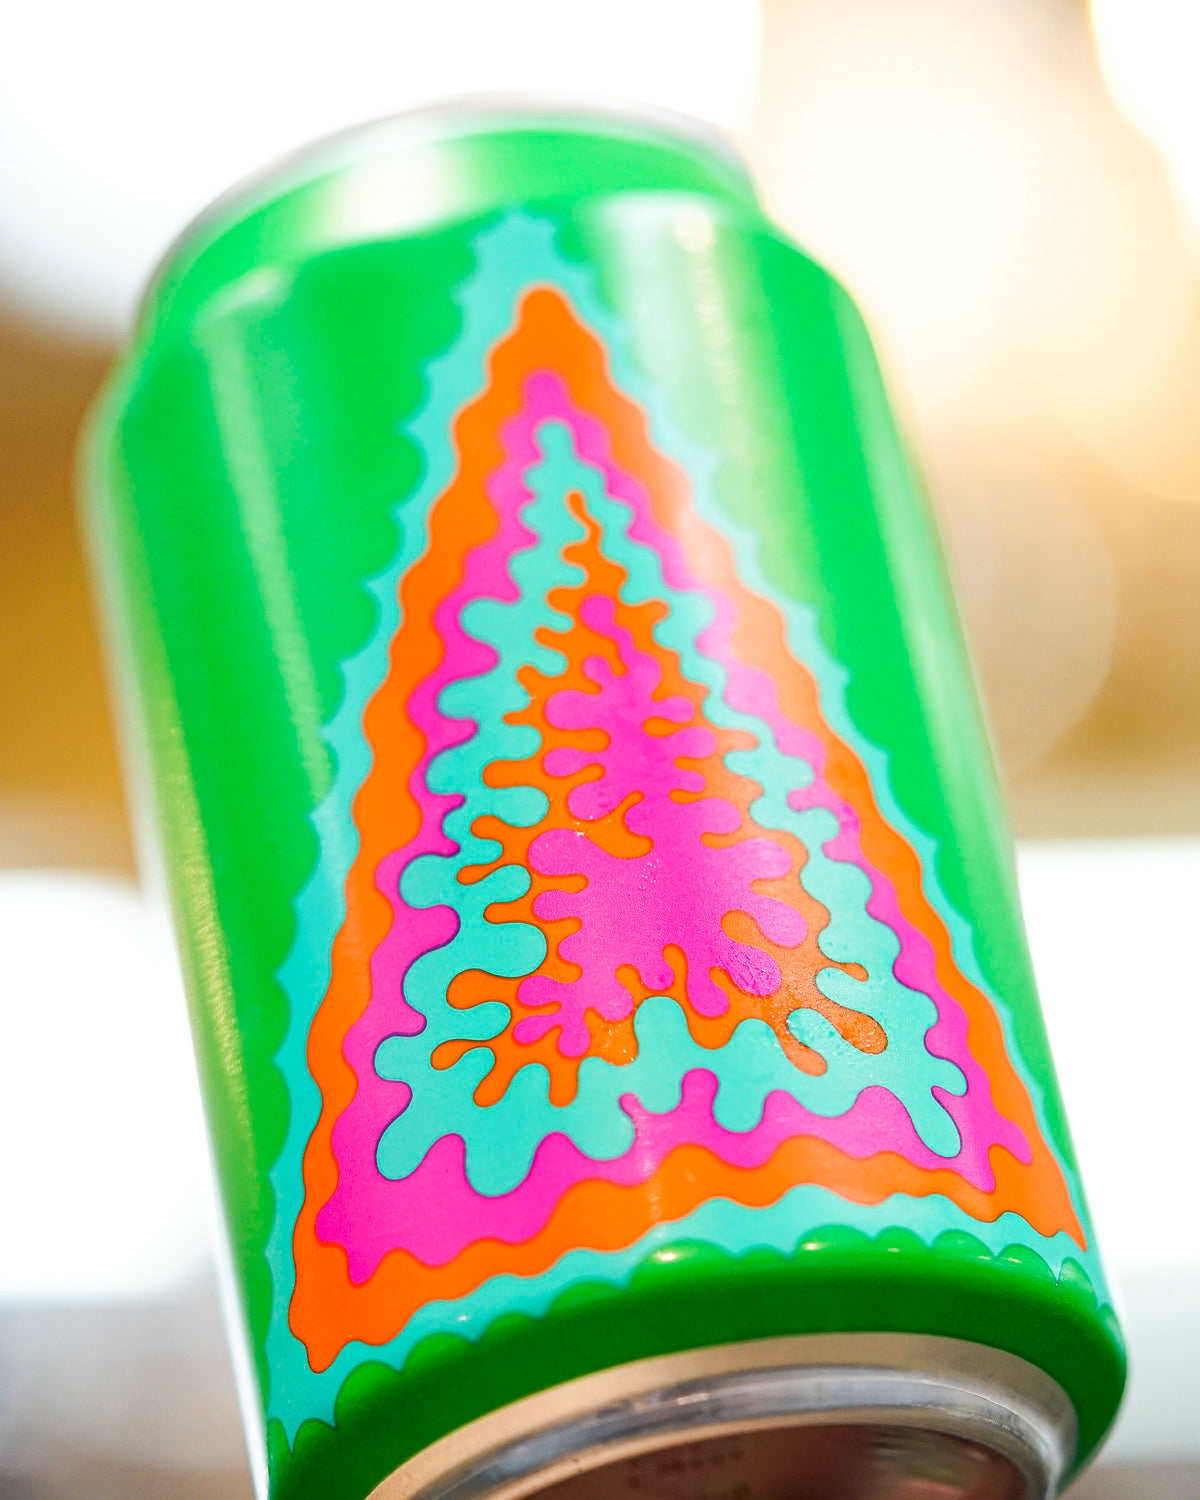 Omnipollo 'Karpologi' Pineapple Peach Passion Candy Sour Ale 330mL